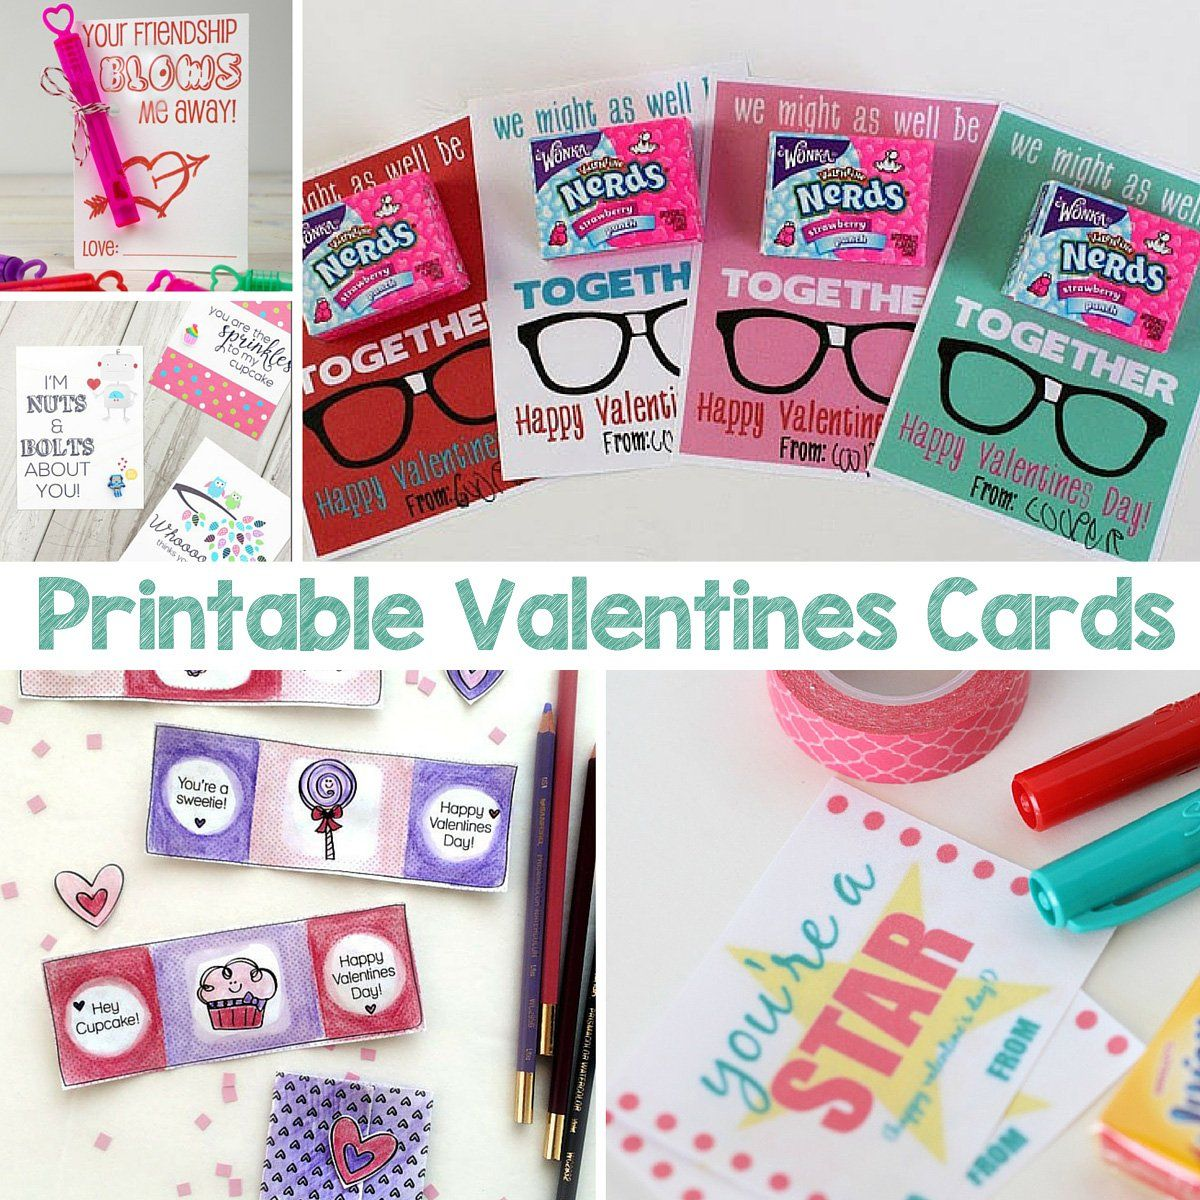 Printable Valentines Cards valentines crafts Pinterest – Valentines Cards for School